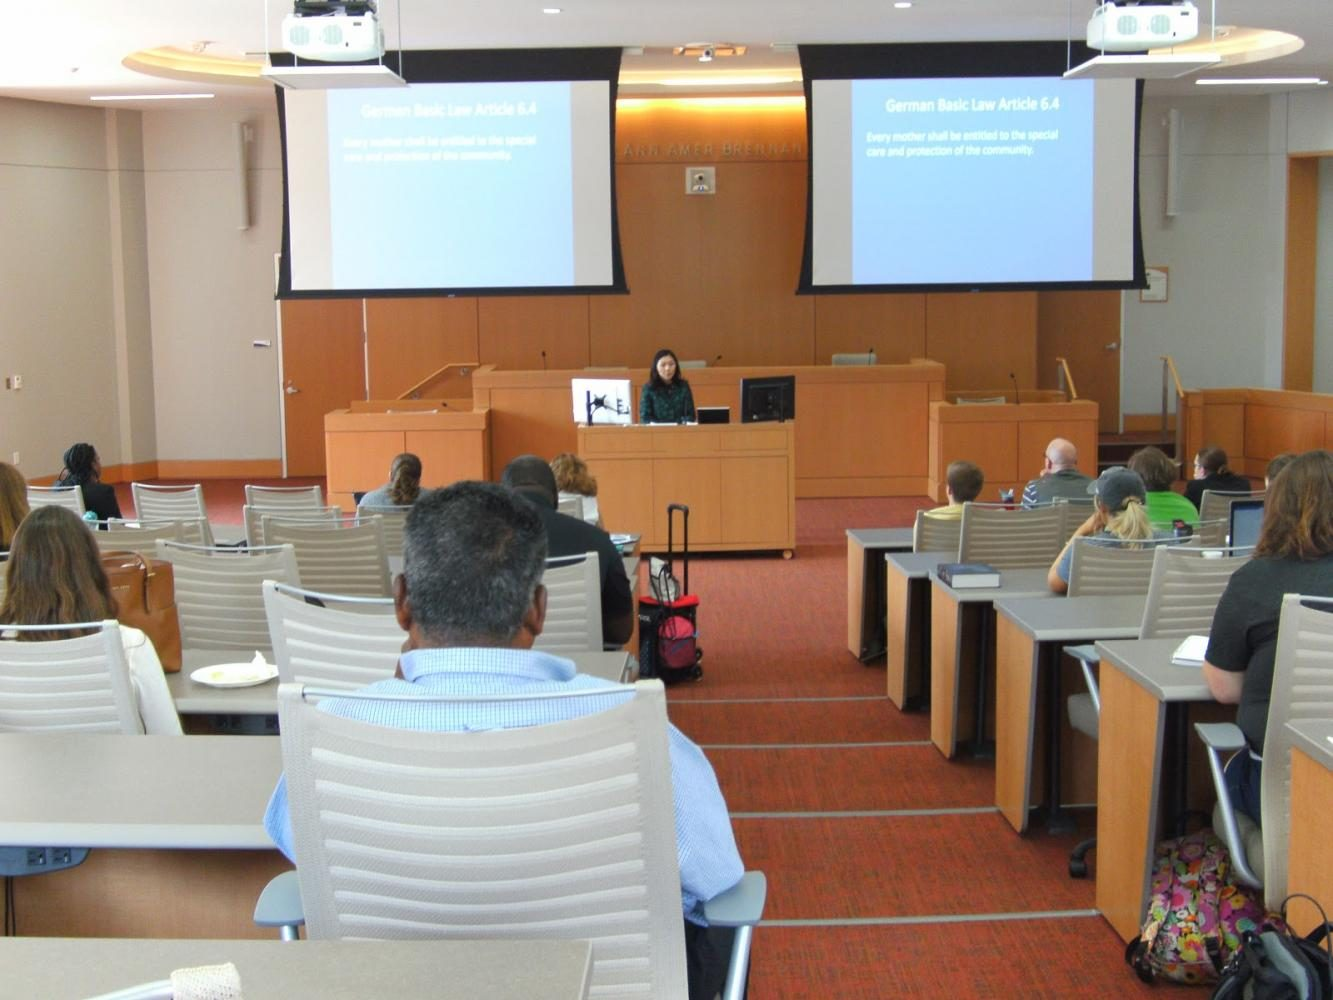 Suk lectures to a room full of students and staff in the Brennan Courtroom in the School of Law.